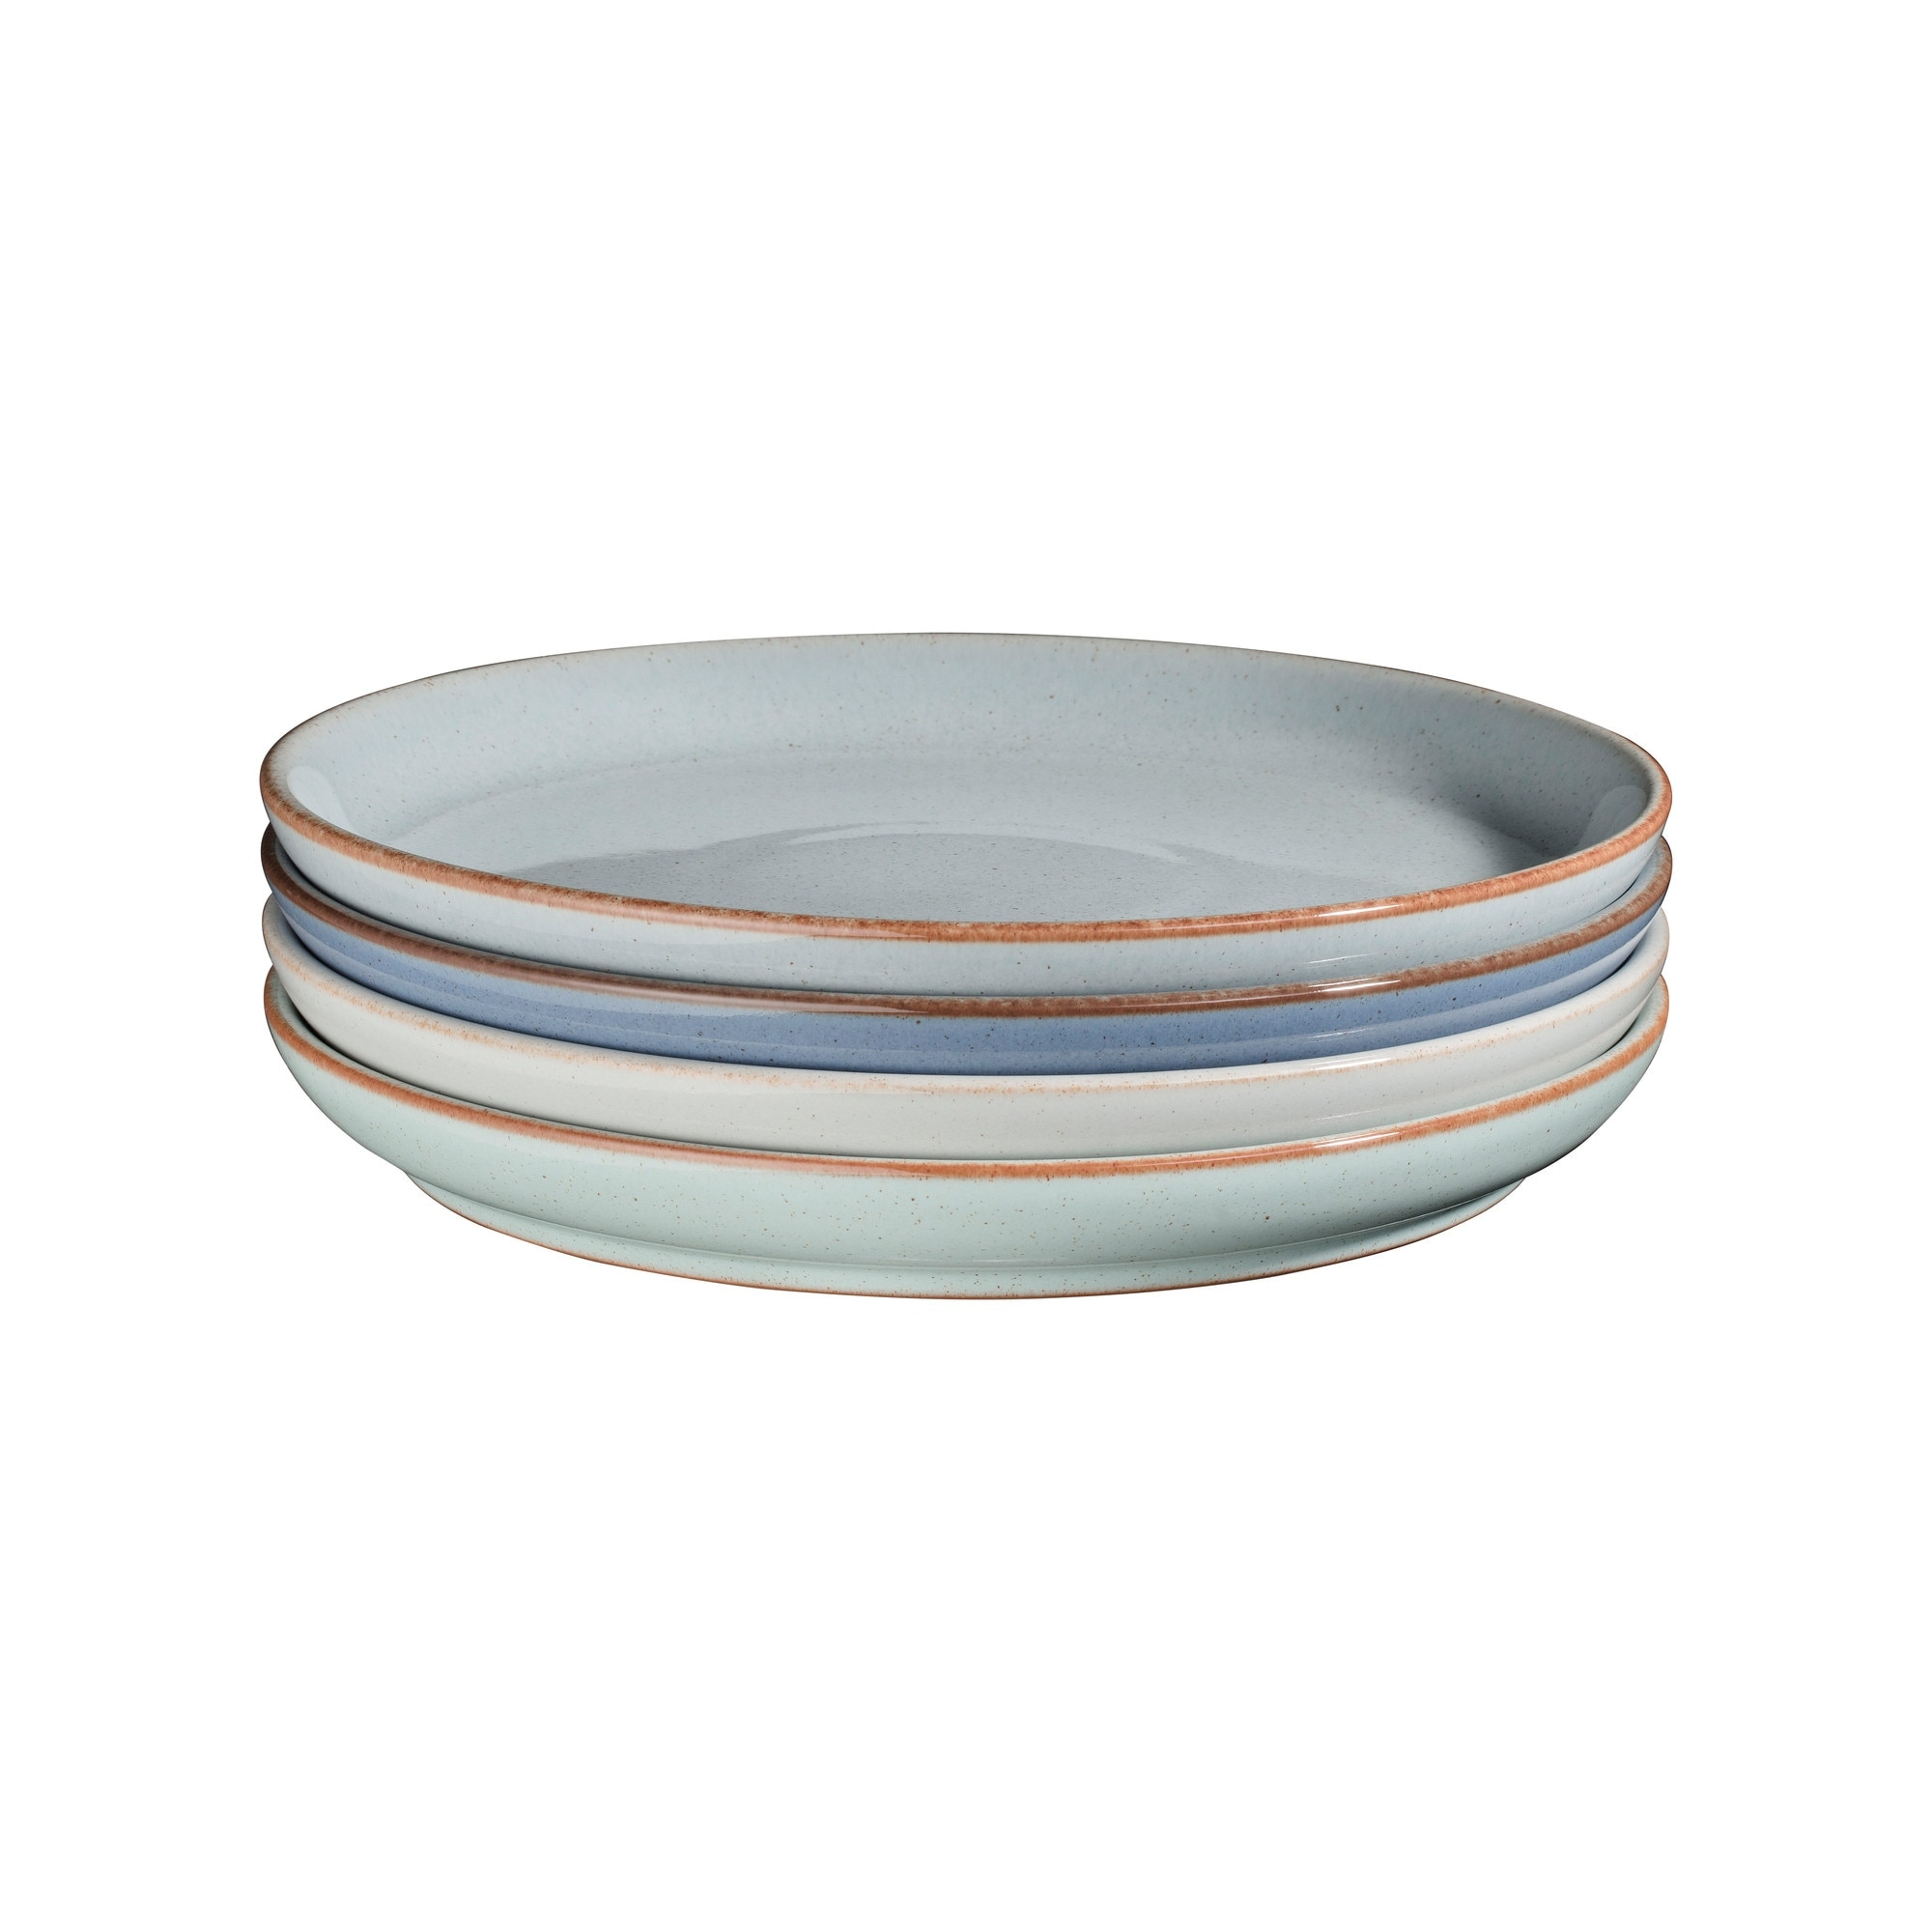 Compare prices for Always Entertaining The Blue Edit 4 Piece Medium Coupe Plate Set